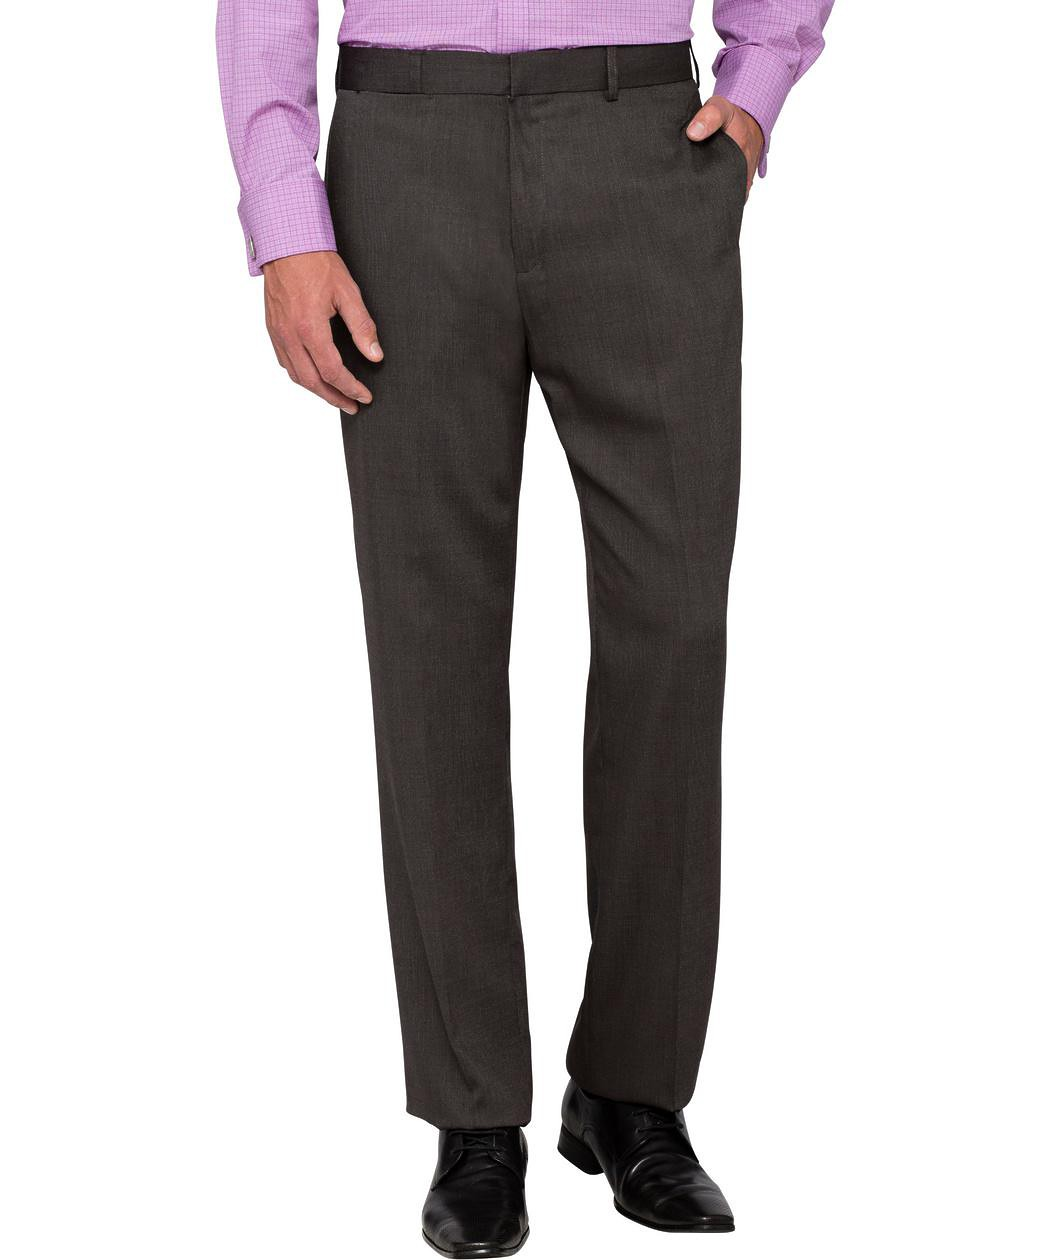 Business Trousers classic relaxed fit business trousers charcoal QCWGYUU